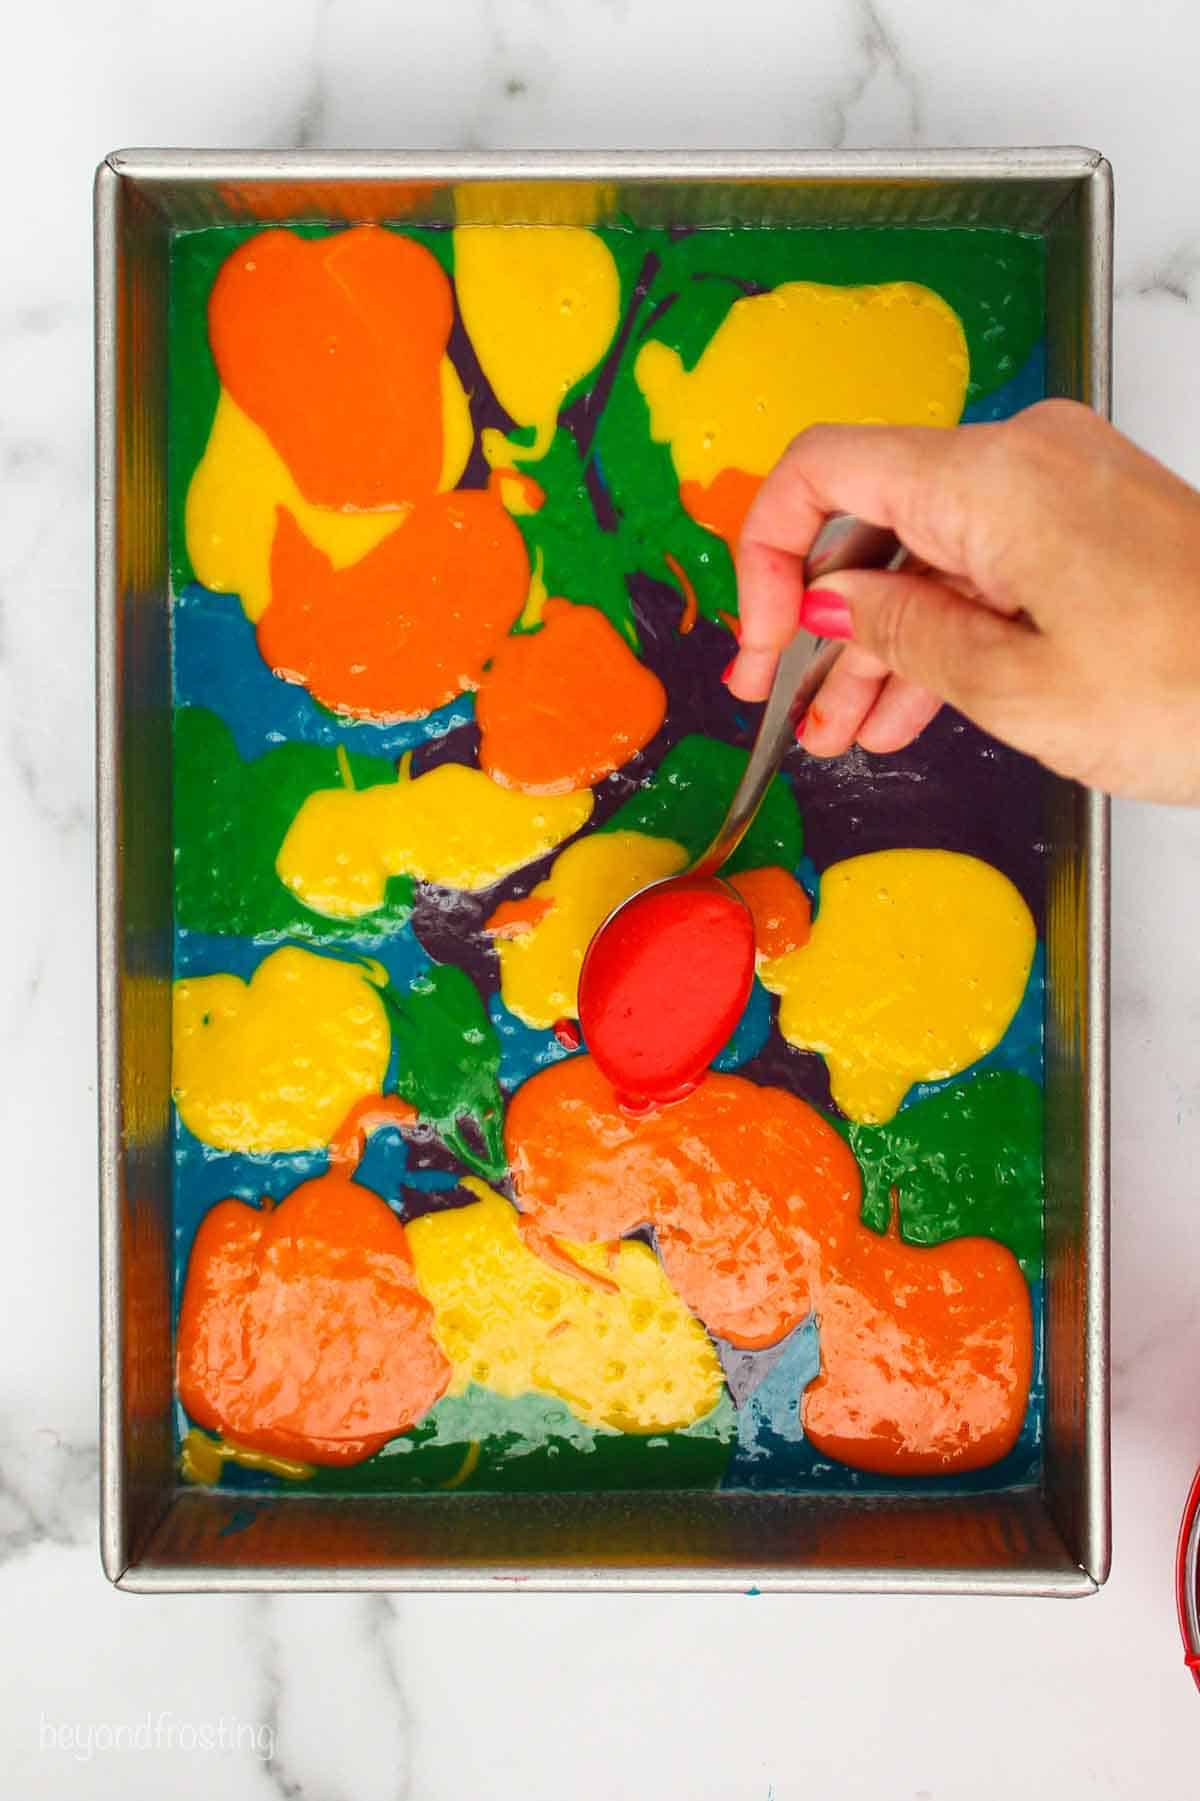 Spoonsfuls of blue, purple, green, yellow and orange cake batter layers in a pan